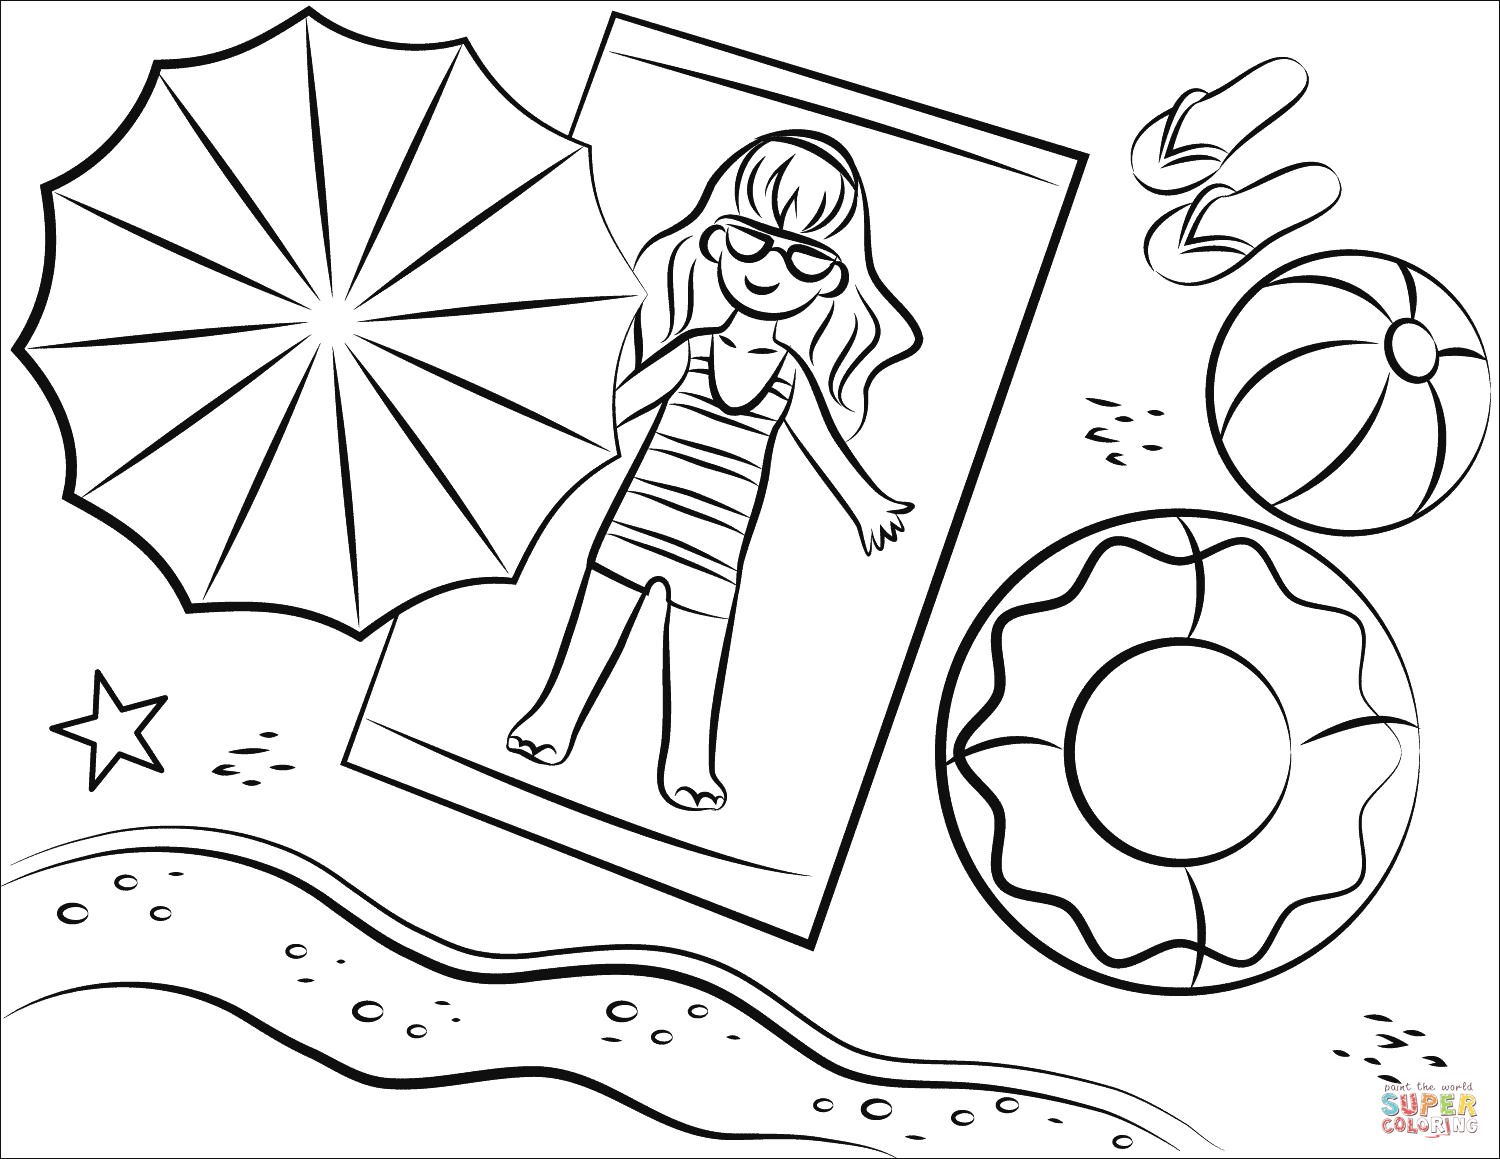 beach coloring template beach coloring pages downloadable full documents k5 beach coloring template